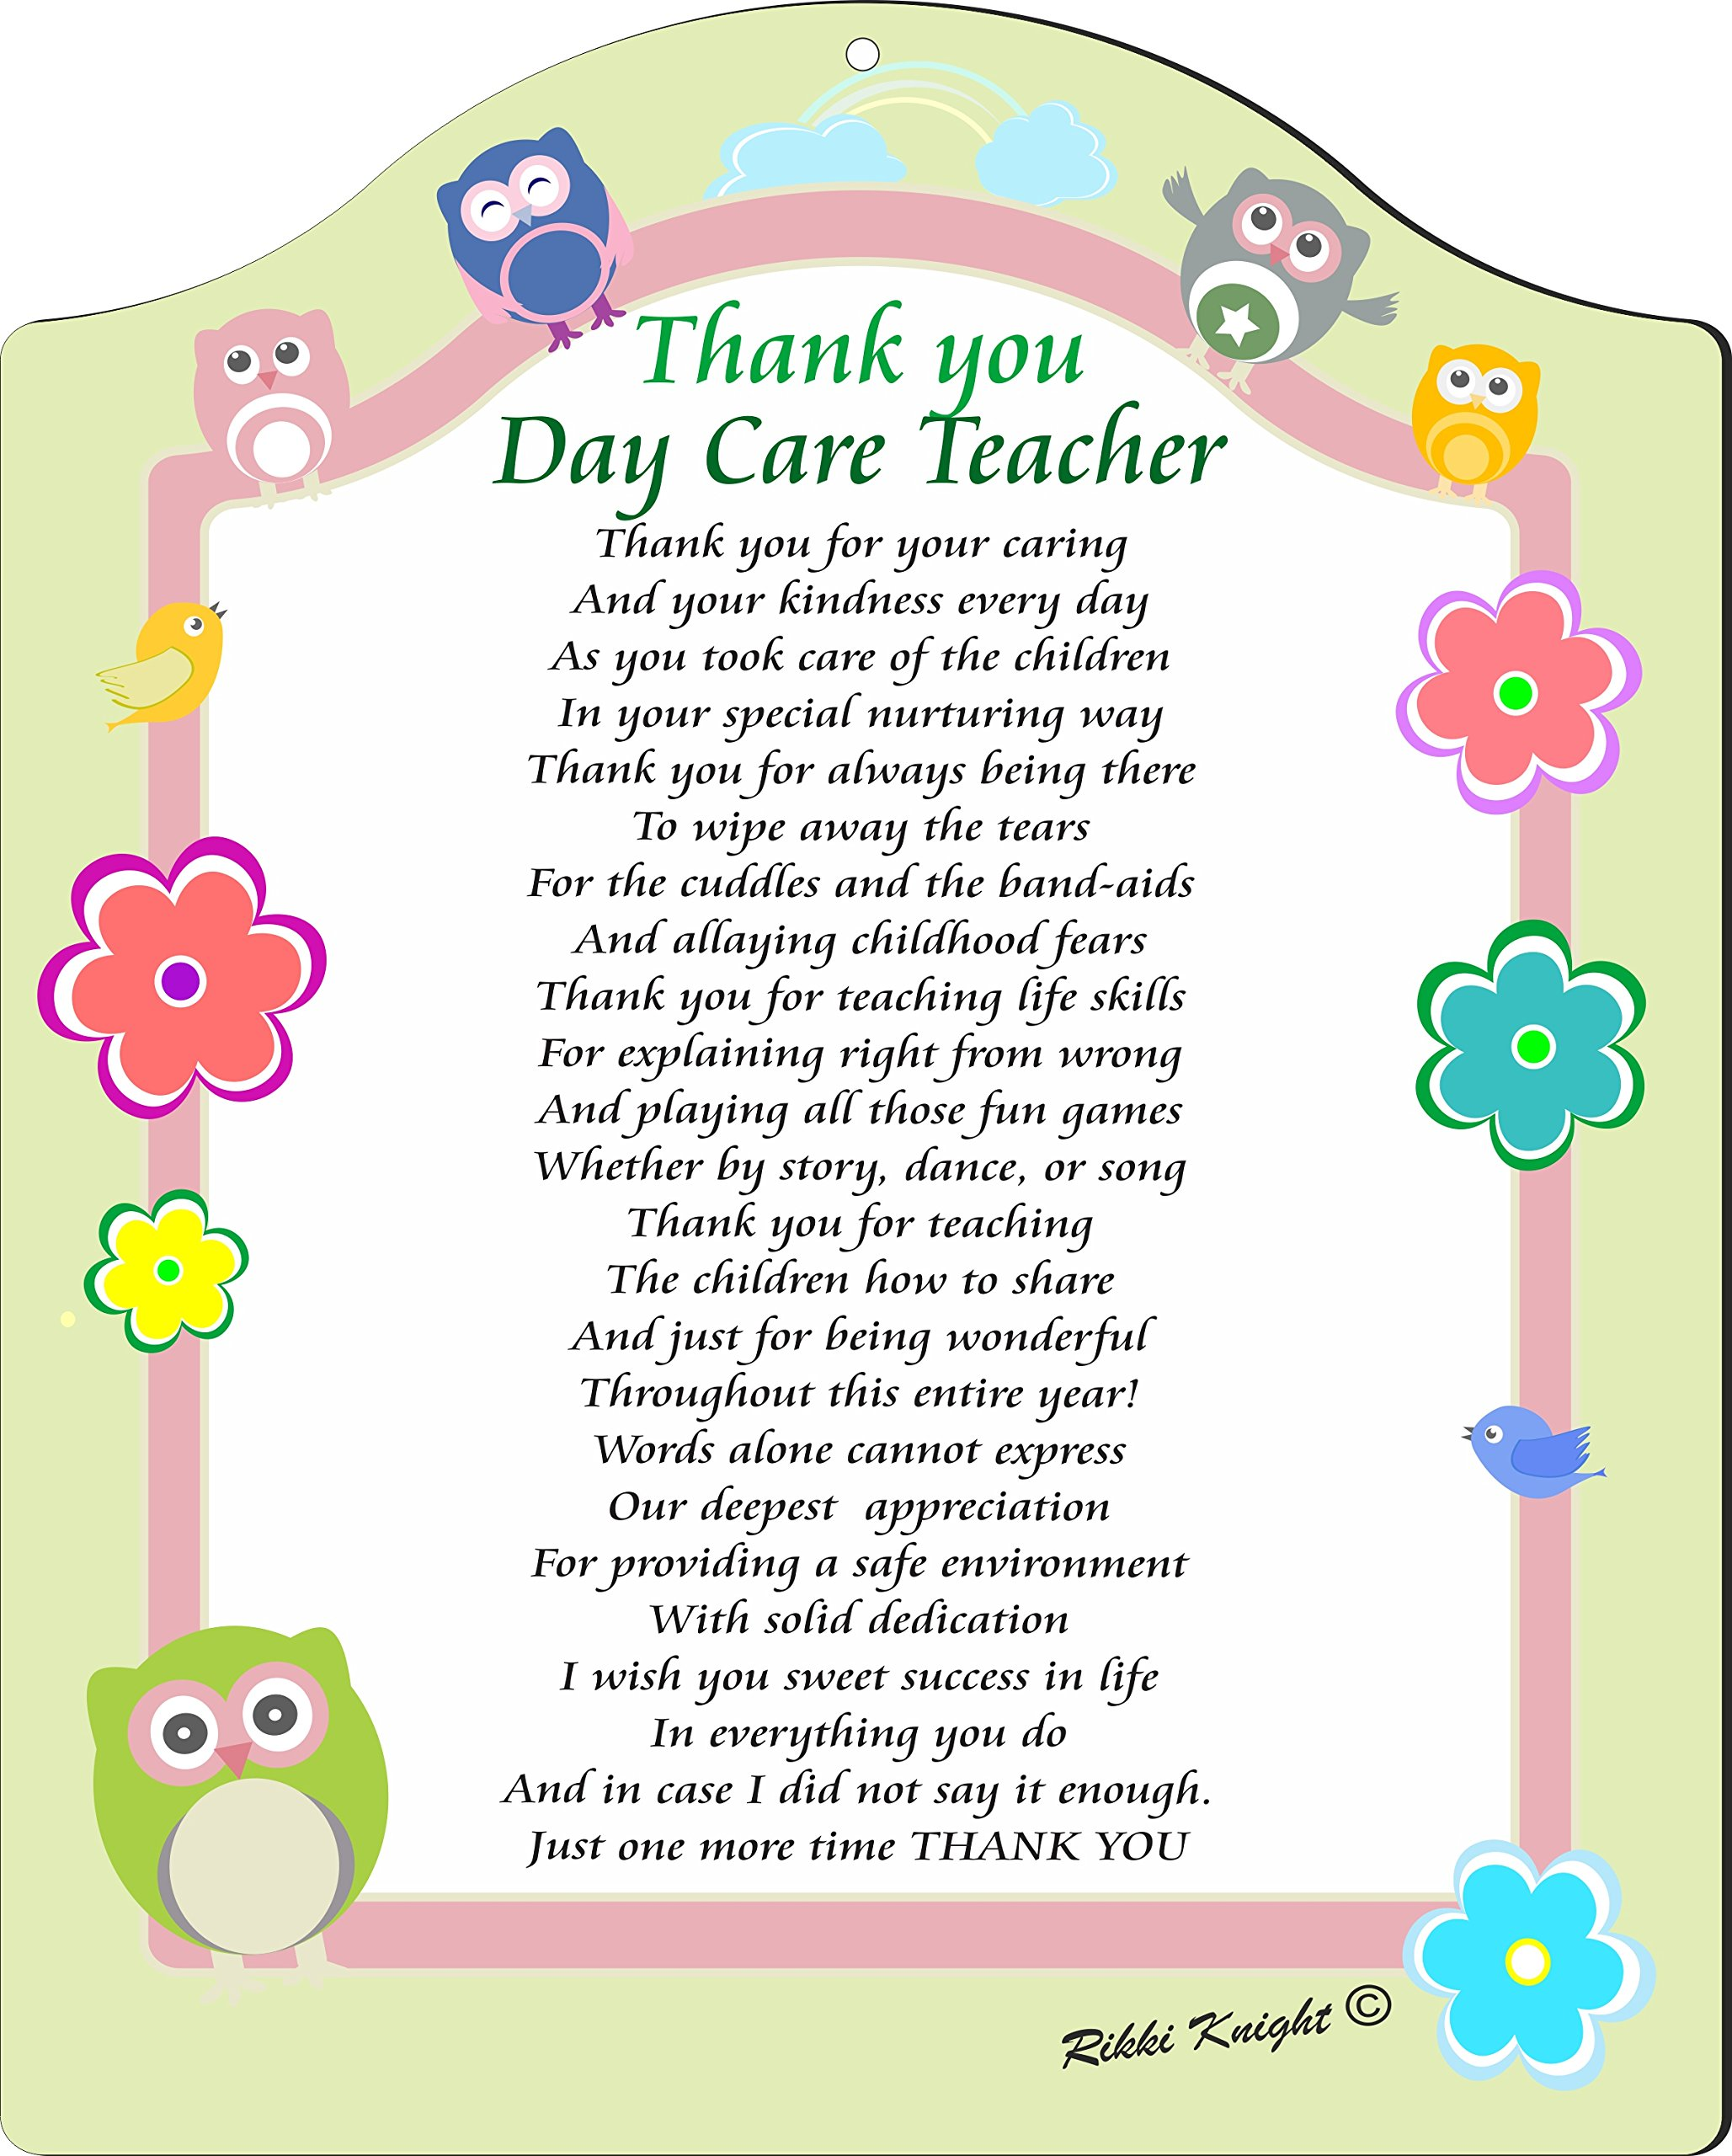 Rikki Knight Thank You Day Care Teacher Poem Plaque, 8x10, Daycare